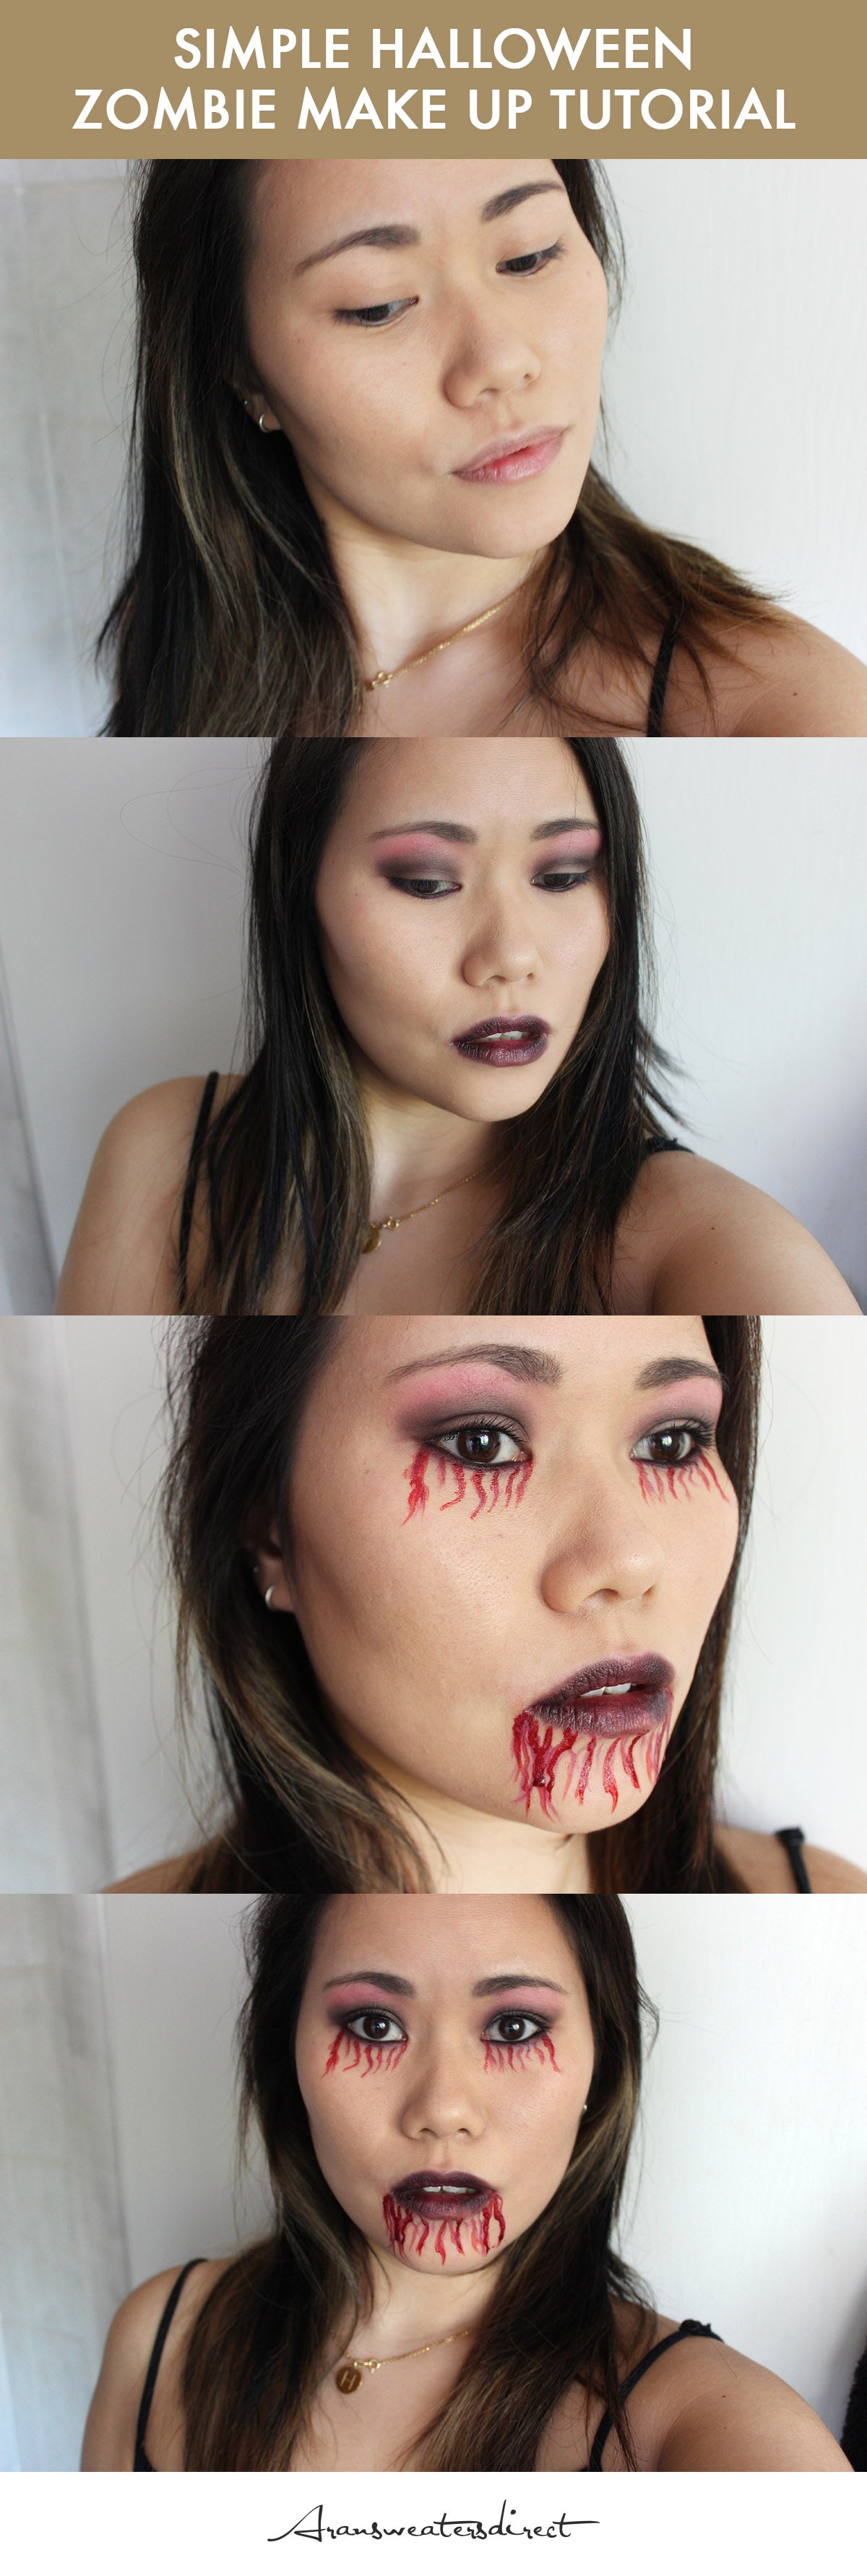 Simple Zombie Halloween Make Up Tutorial #halloween #makeup